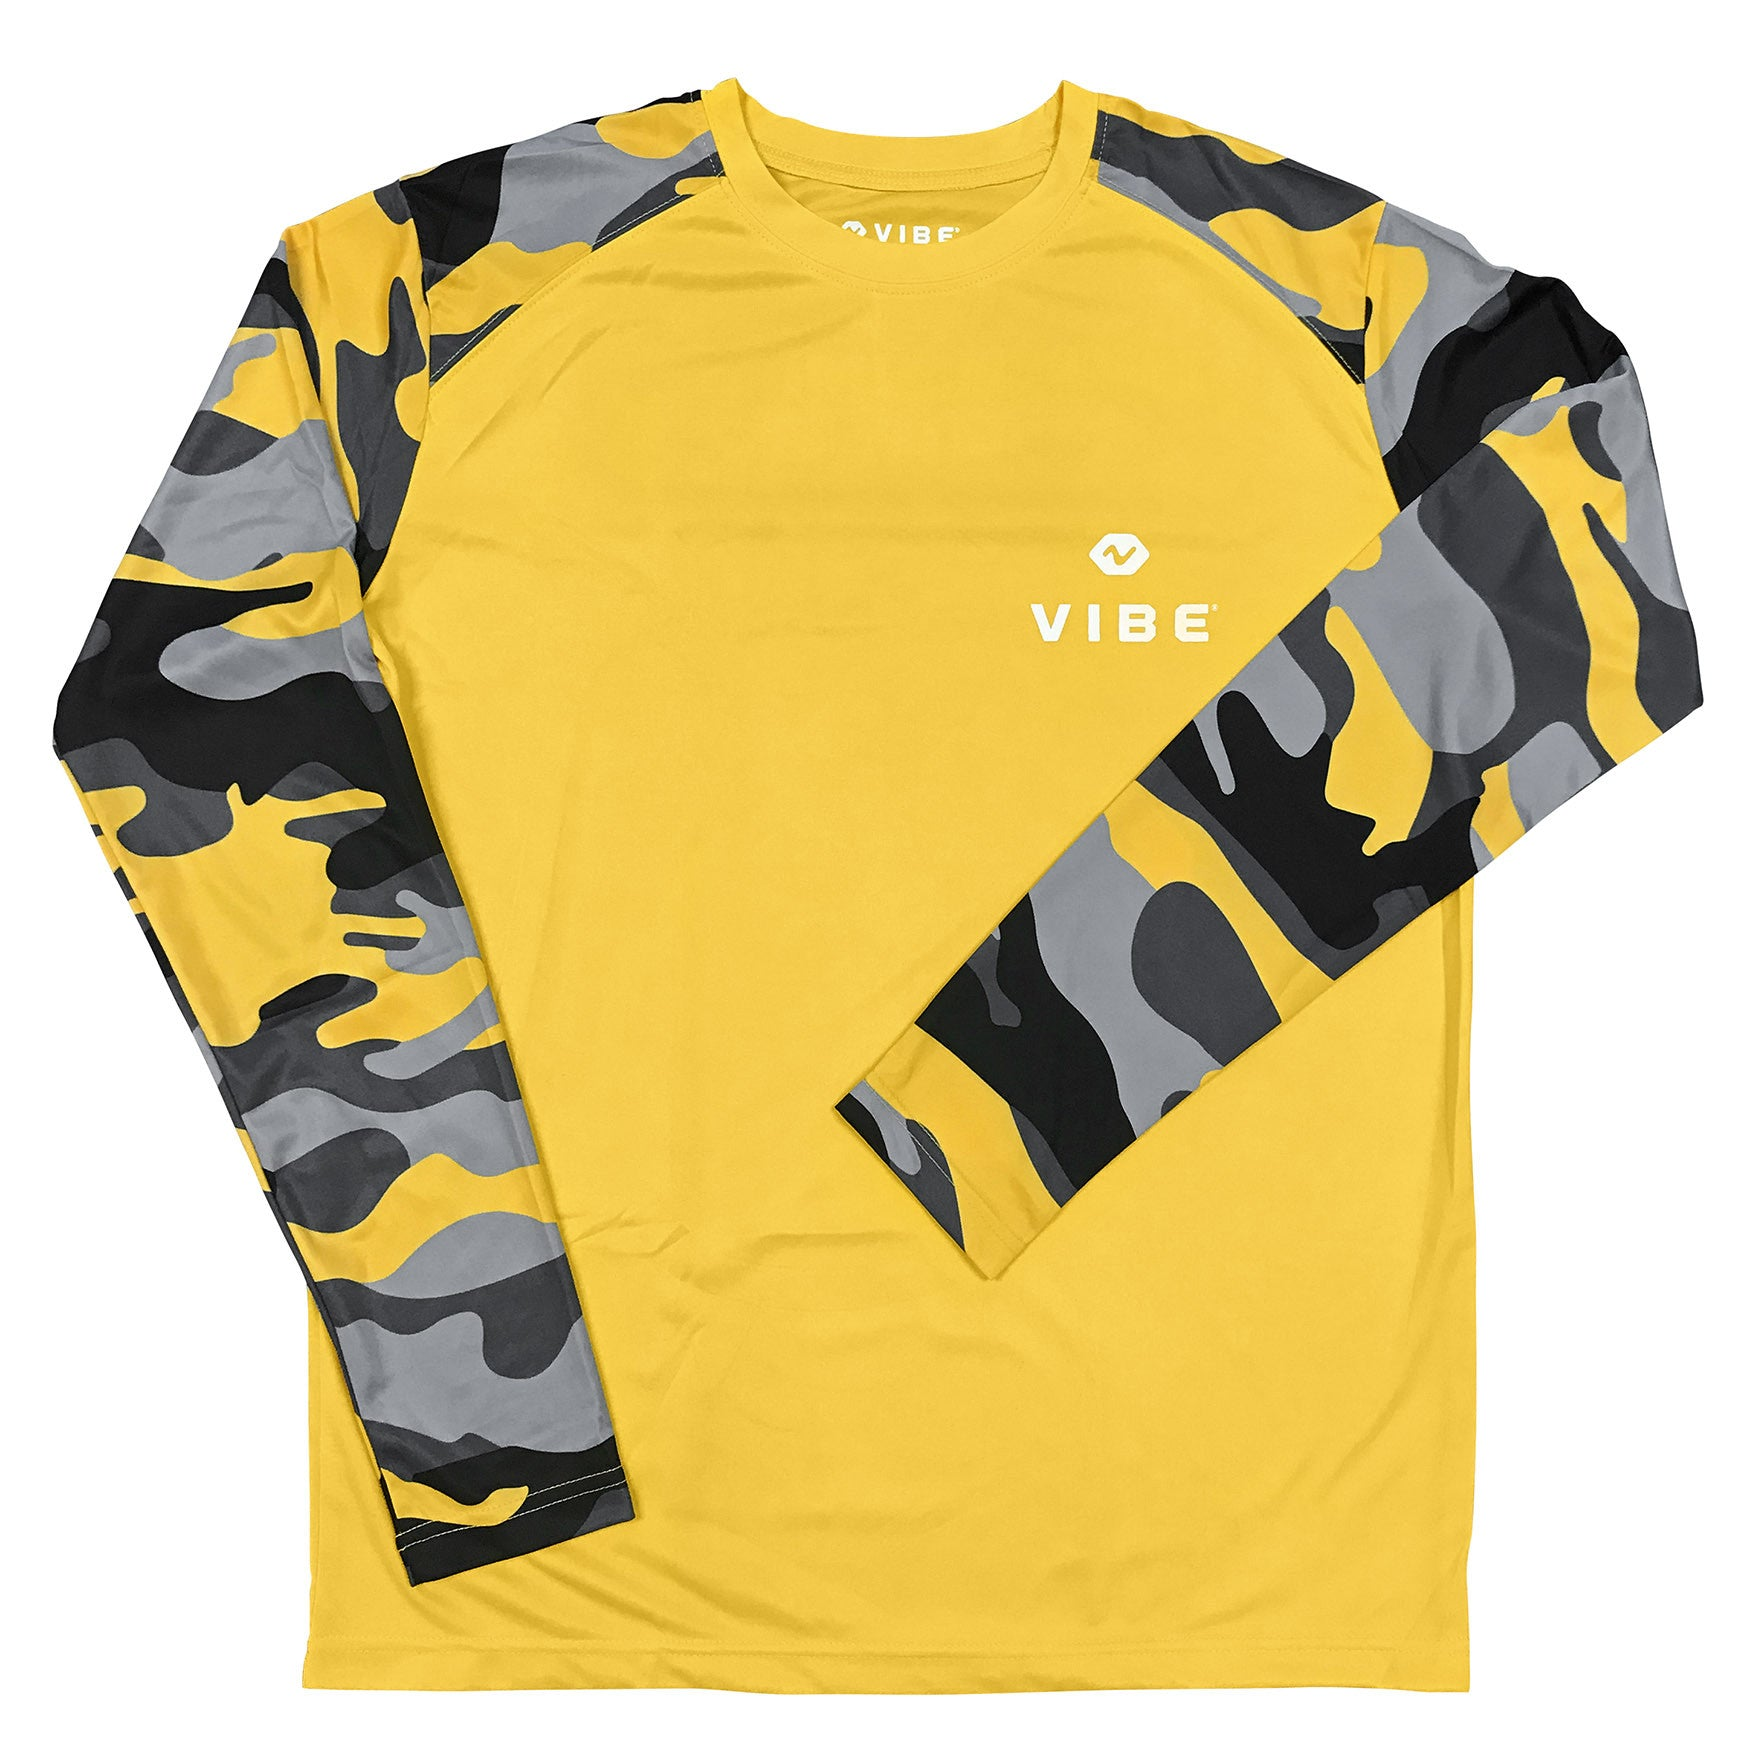 Vibe Performance Long Sleeve Shirt - Yellow Groove